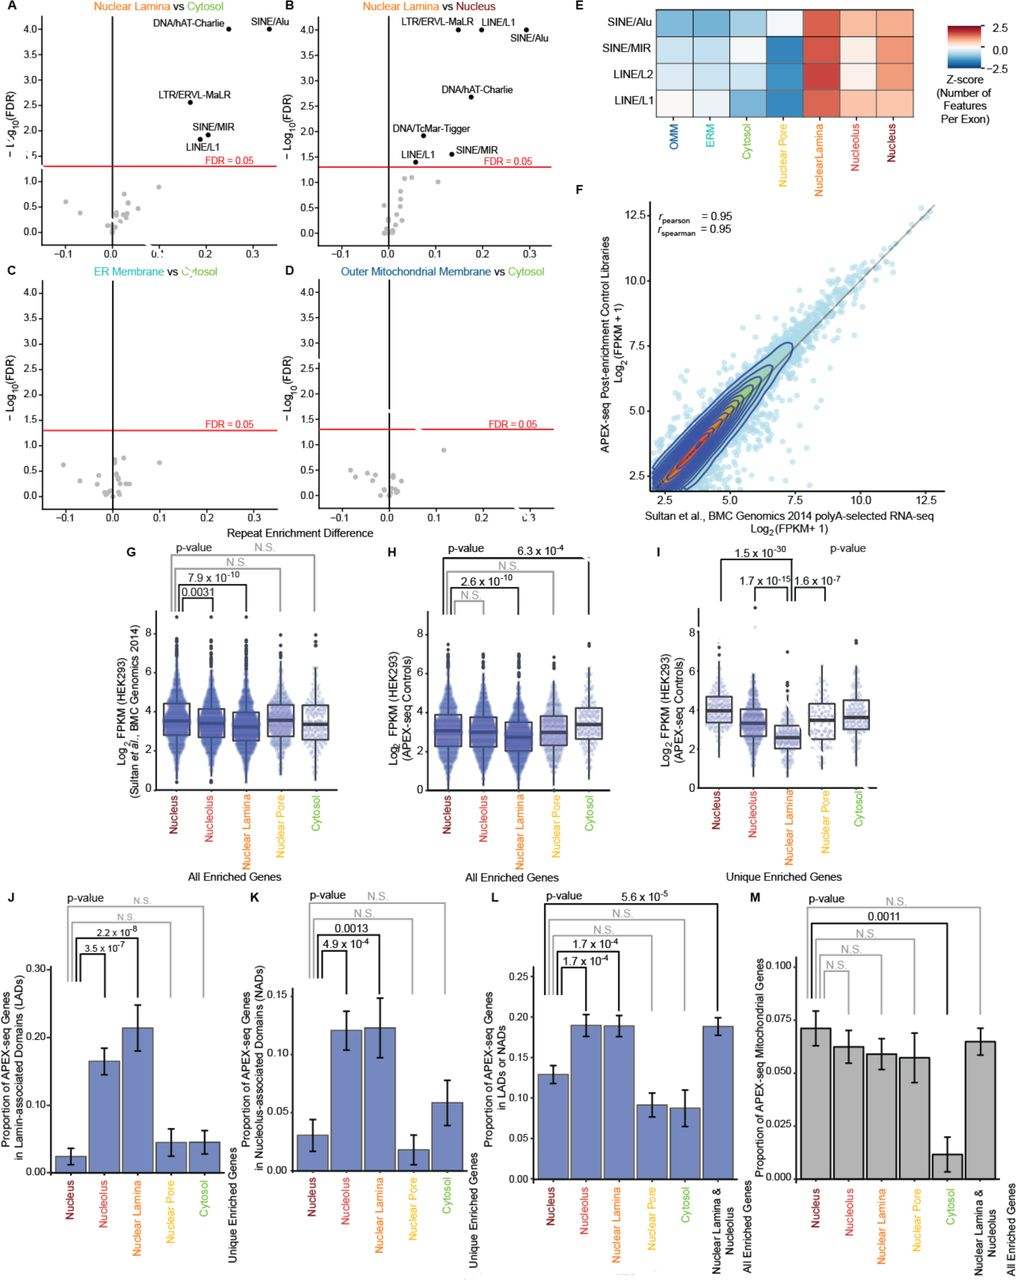 Atlas of Subcellular RNA Localization Revealed by APEX-seq   bioRxiv